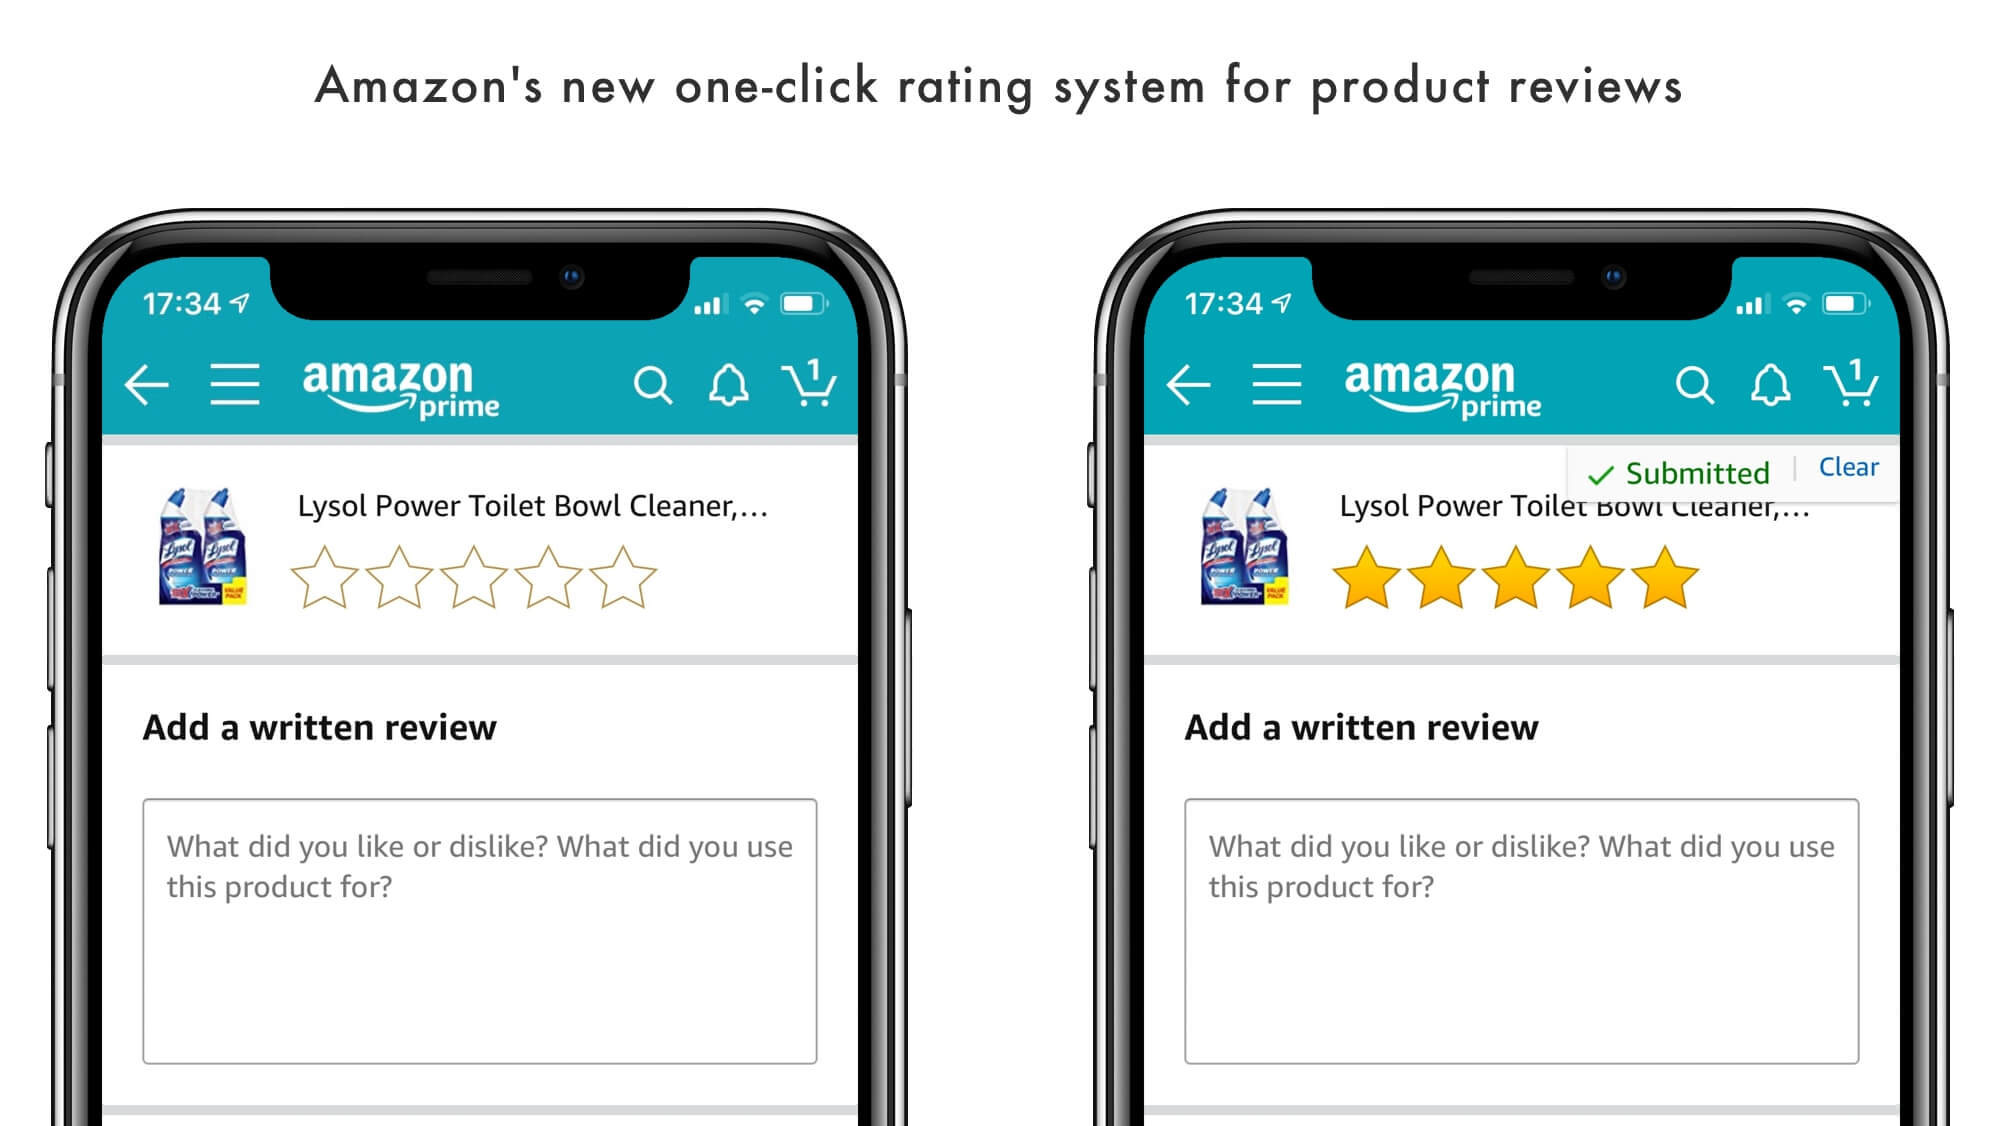 Amazon's new one-click rating system for product reviews